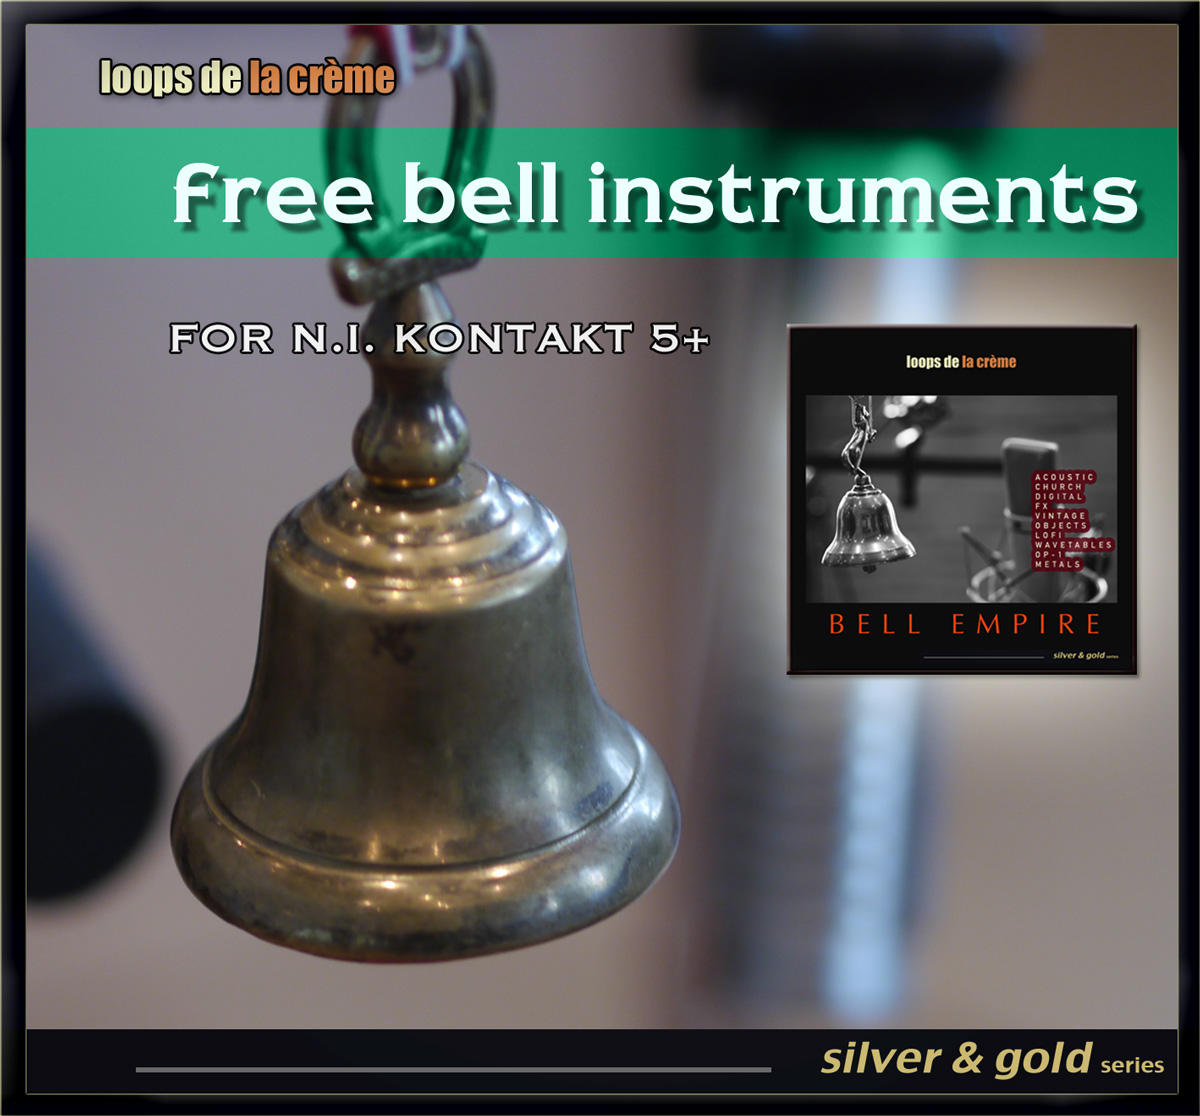 free bell instruments